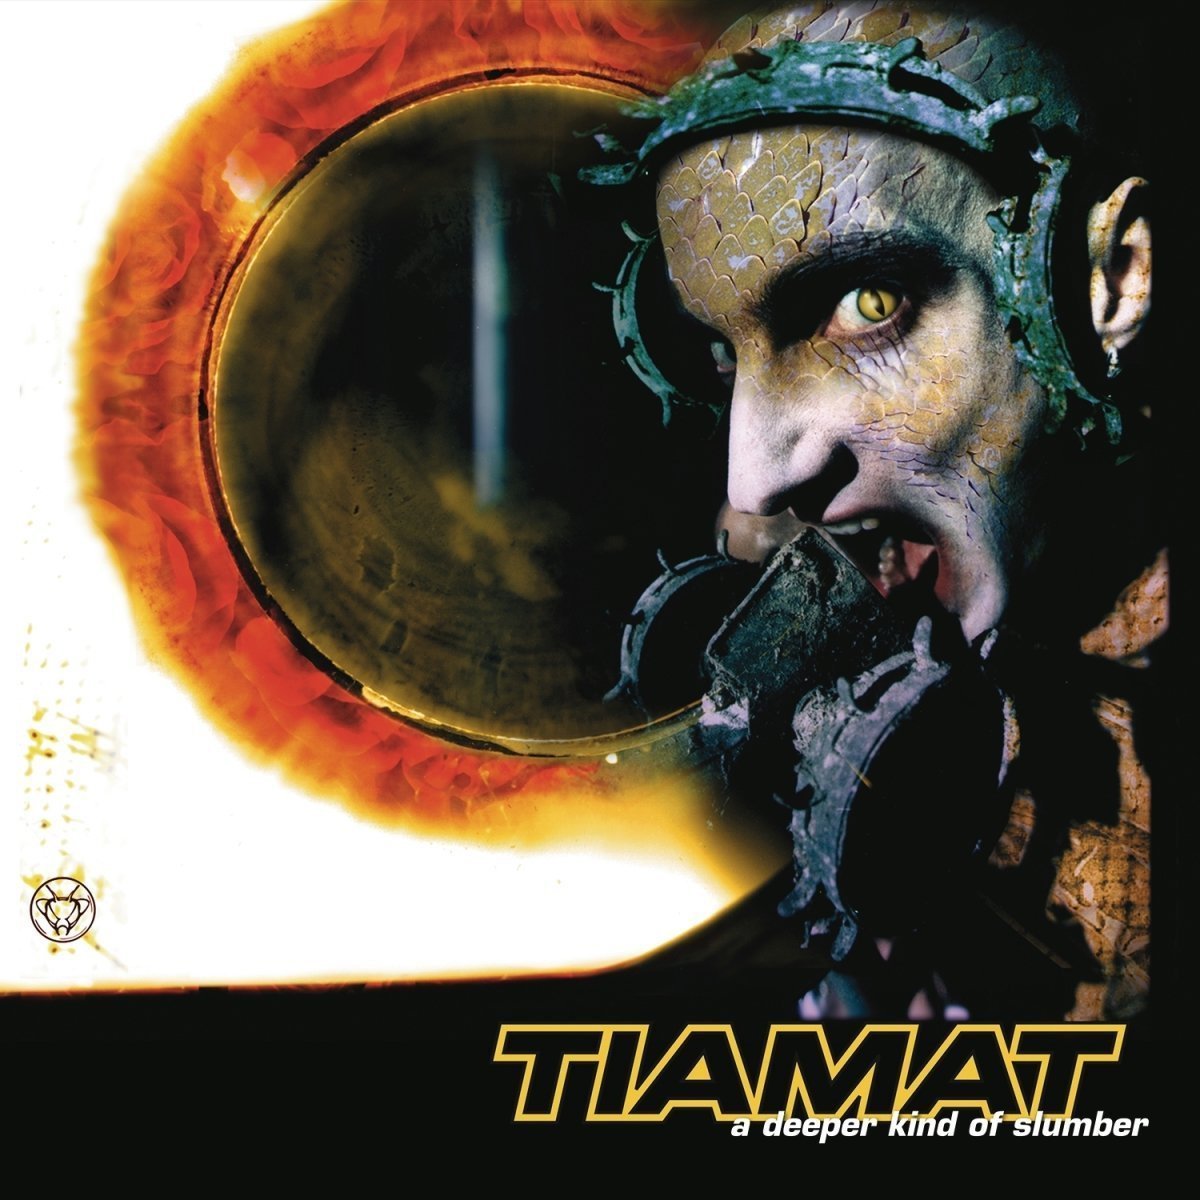 Tiamat - A Deeper Kind of Slumber 2018 [2LP]